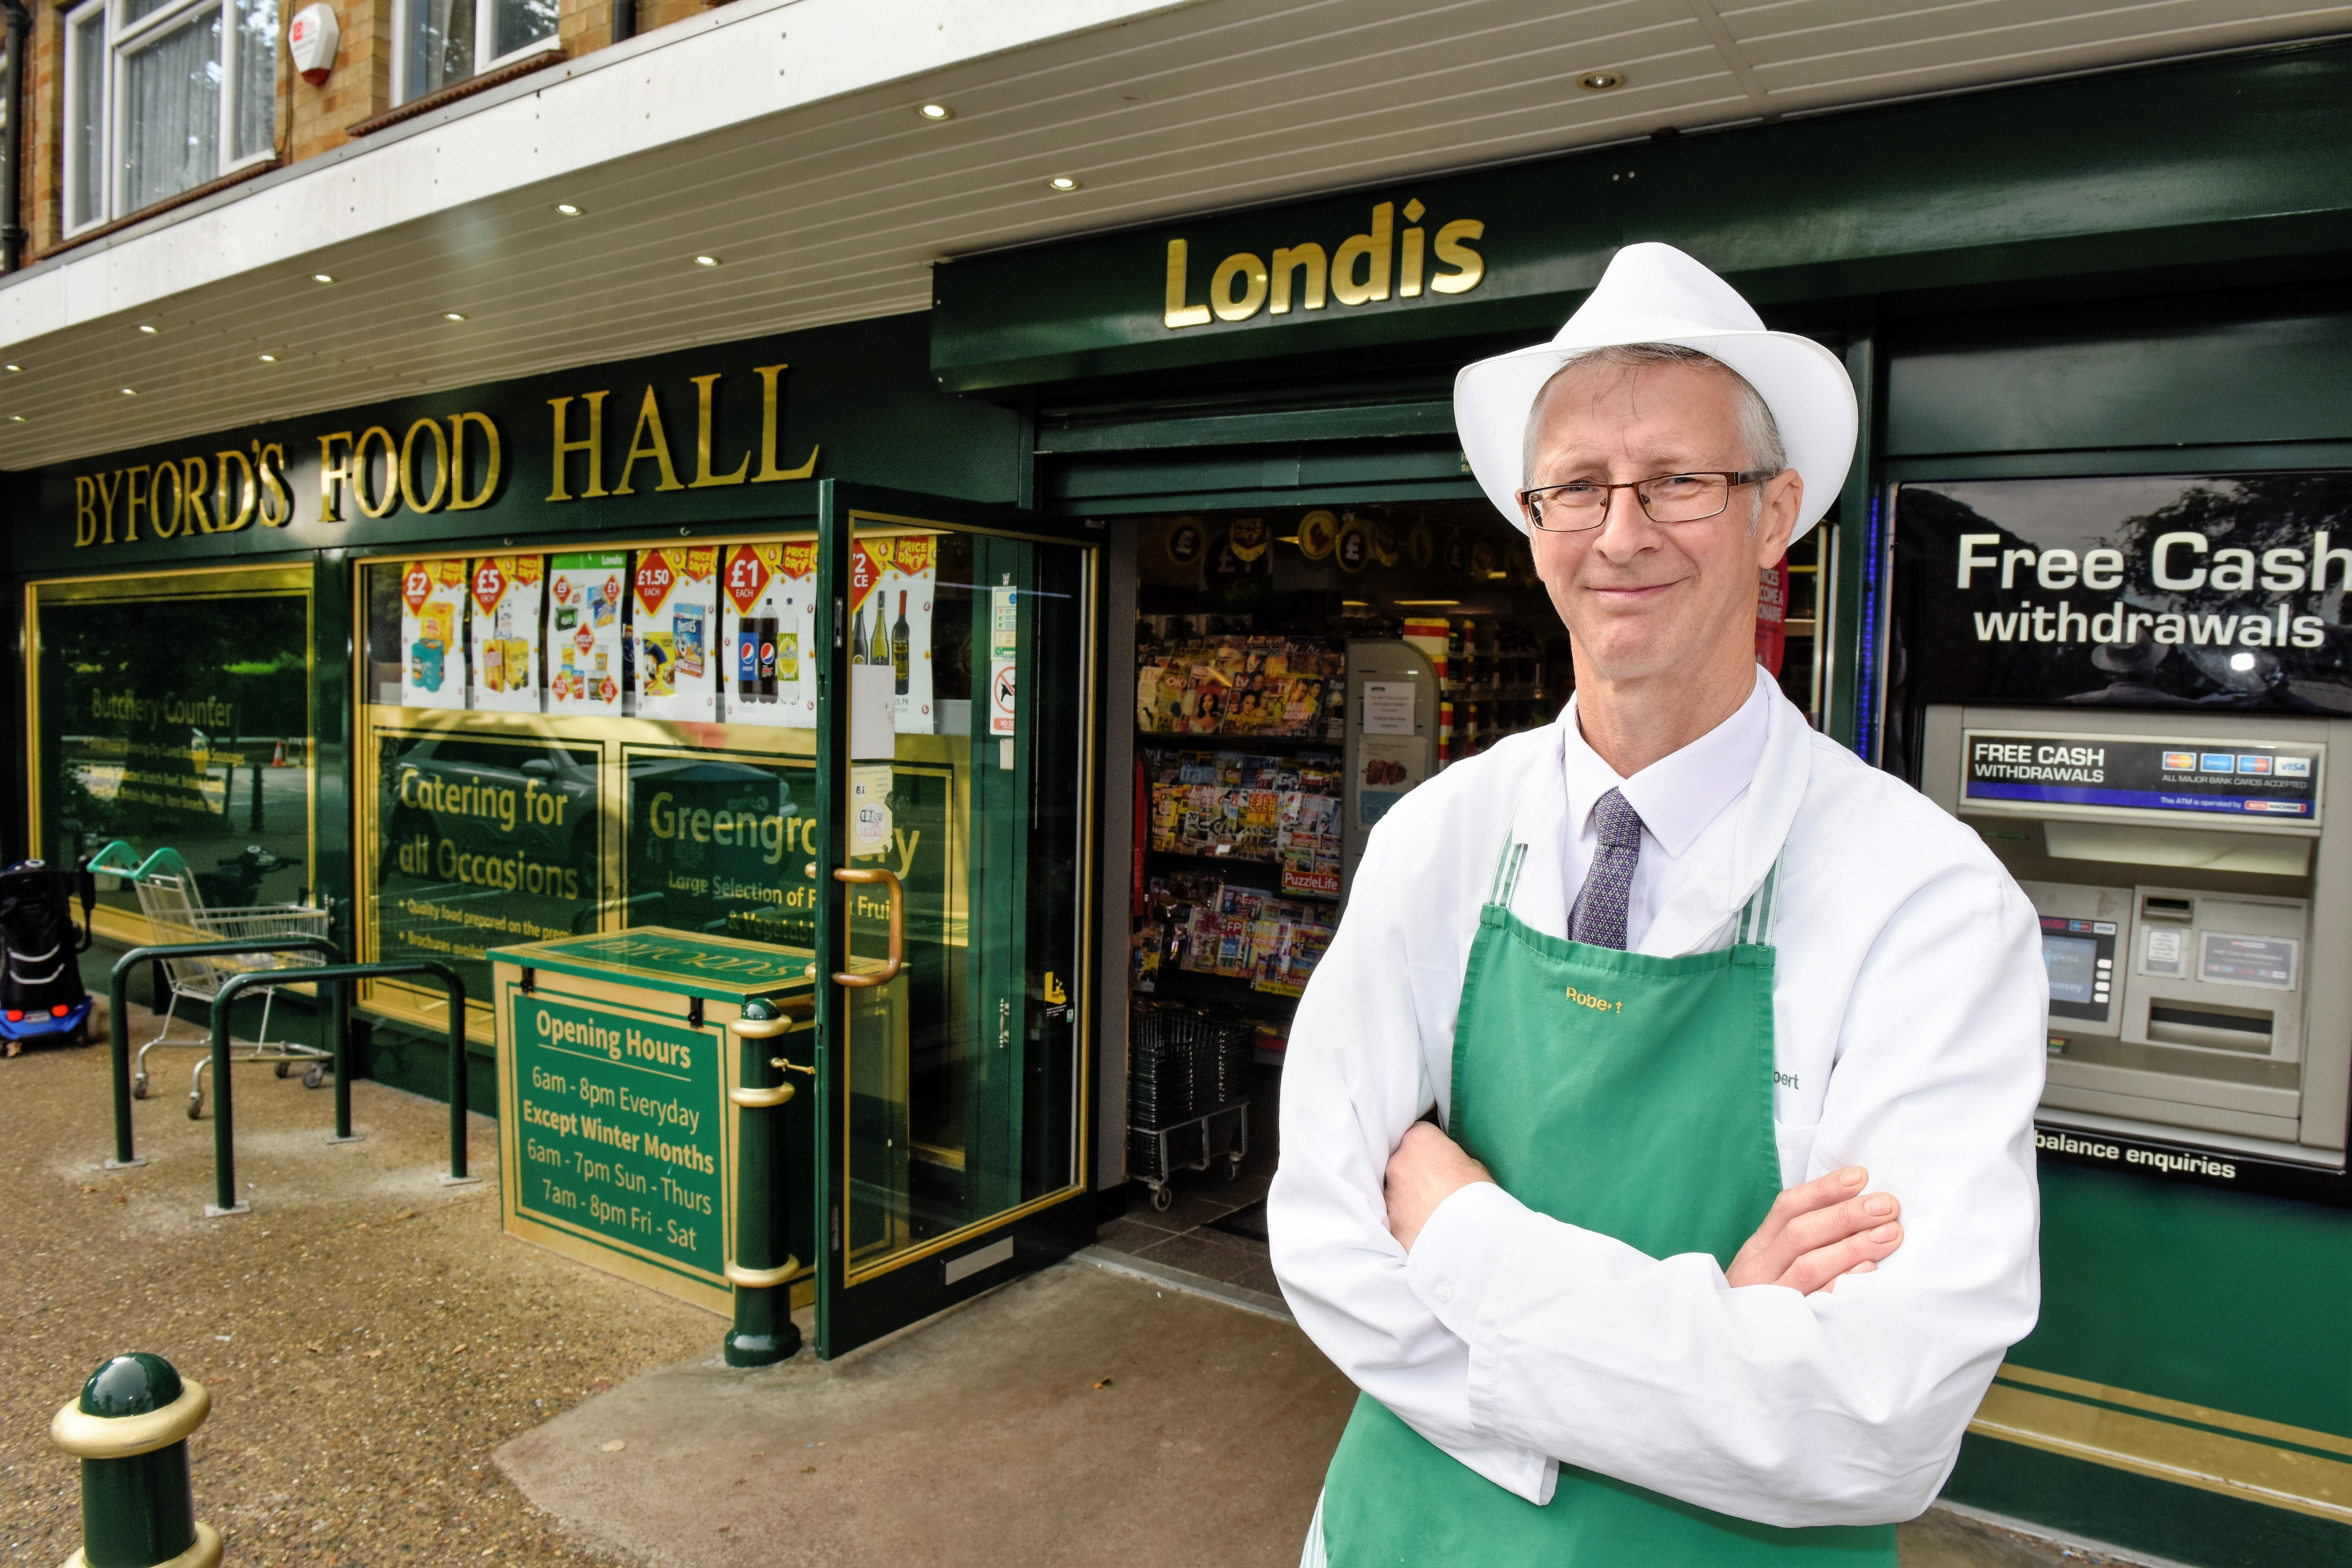 Byfords_Food_Hall_06_Robert_Byford_2